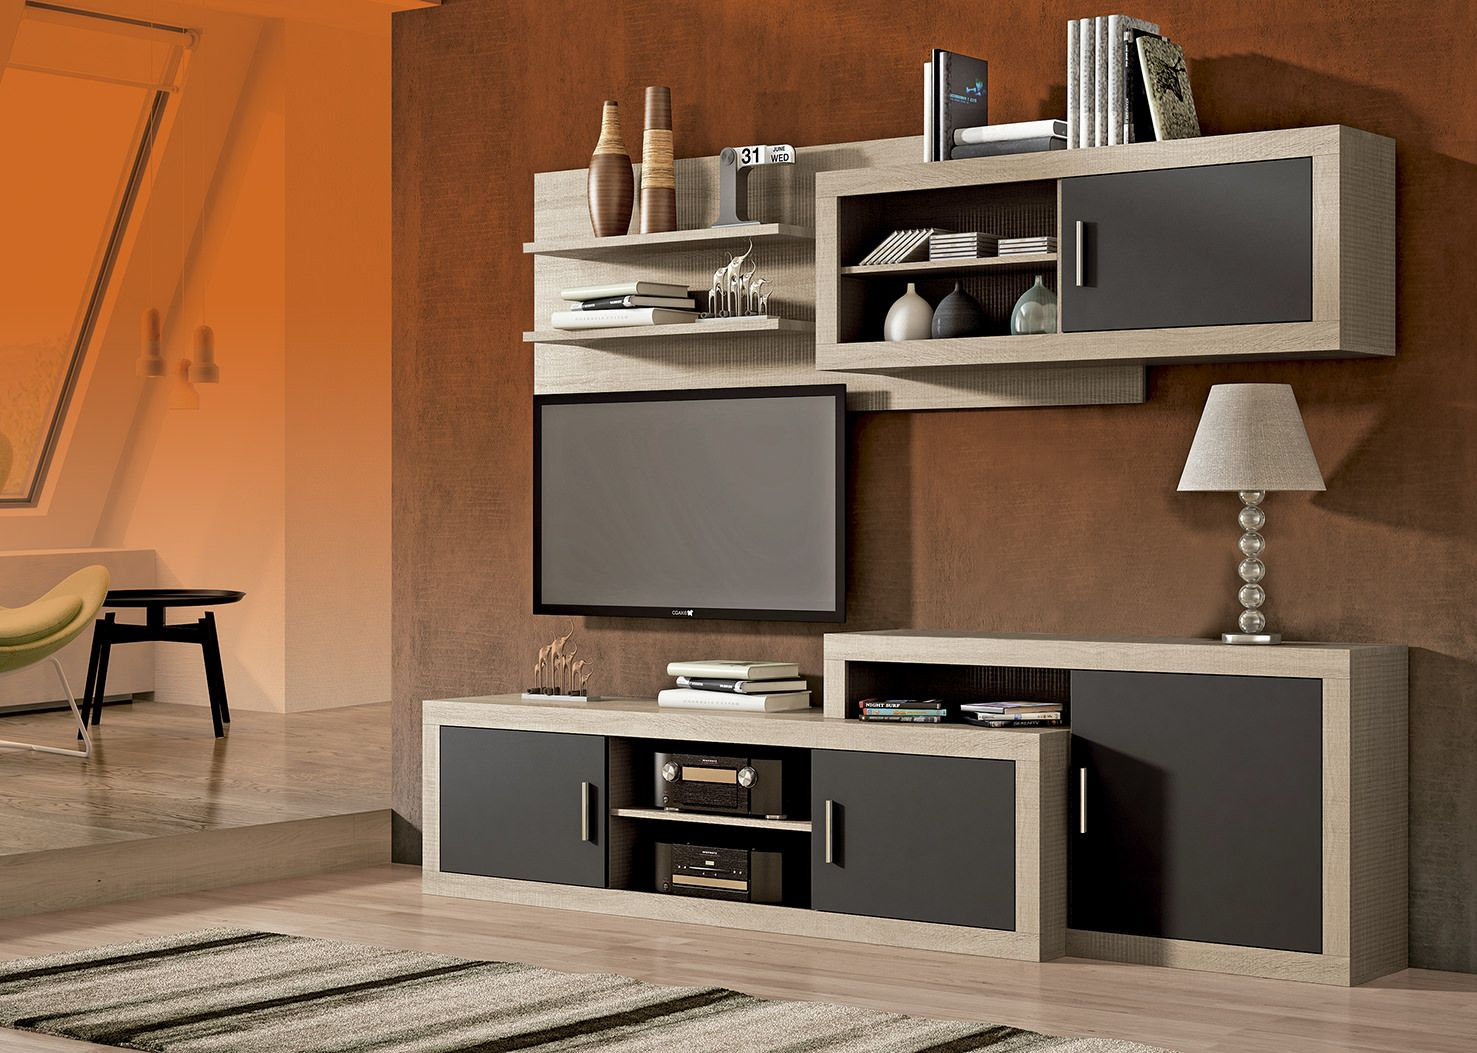 Low Cost Muebles Mueble De Comedor Low Cost Laraga 03 En Color Cambrian Y